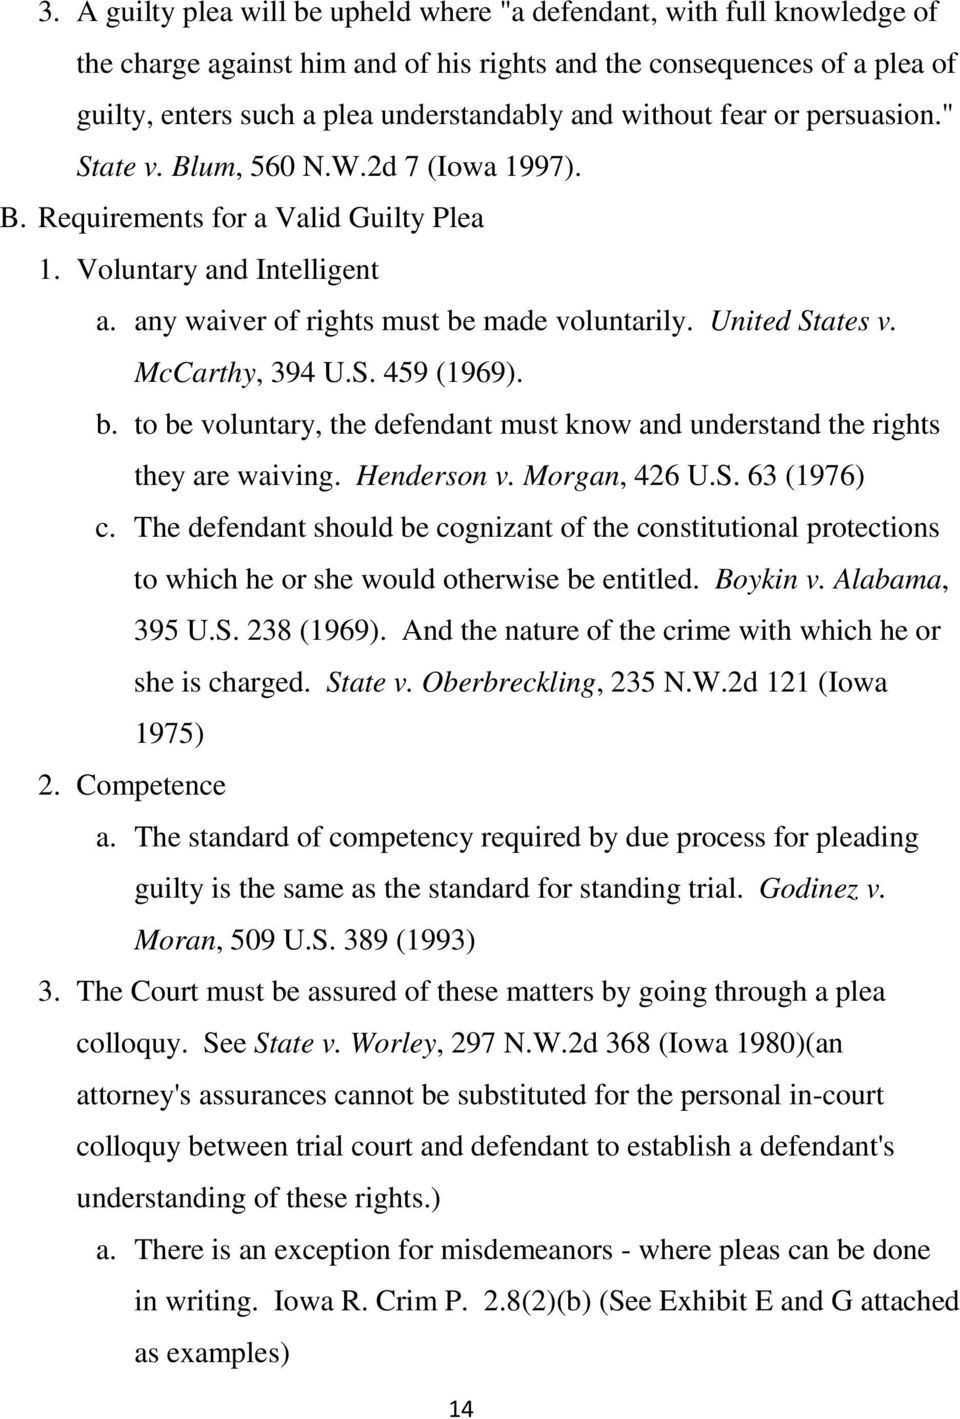 United States v. McCarthy, 394 U.S. 459 (1969). b. to be voluntary, the defendant must know and understand the rights they are waiving. Henderson v. Morgan, 426 U.S. 63 (1976) c.